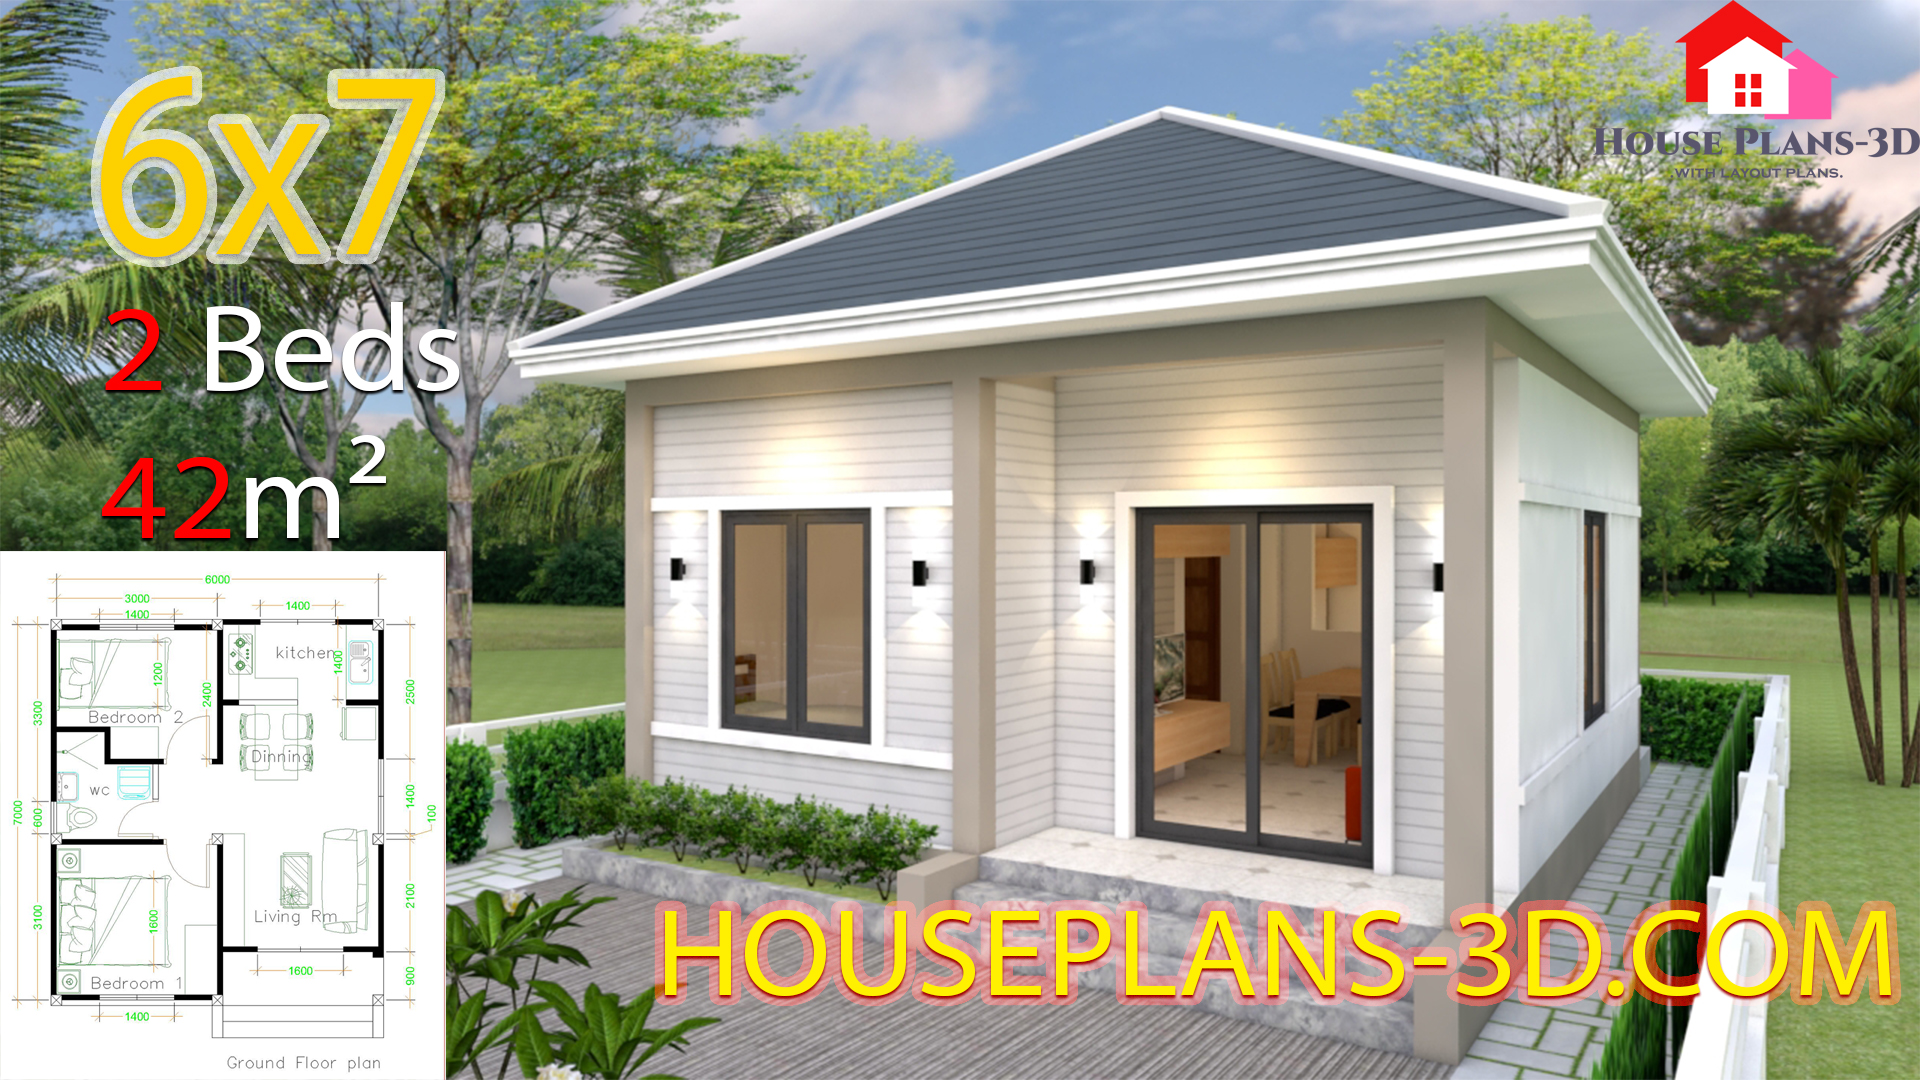 House Plans 6x7 With 2 Bedrooms Hip Roof Samphoas Plan